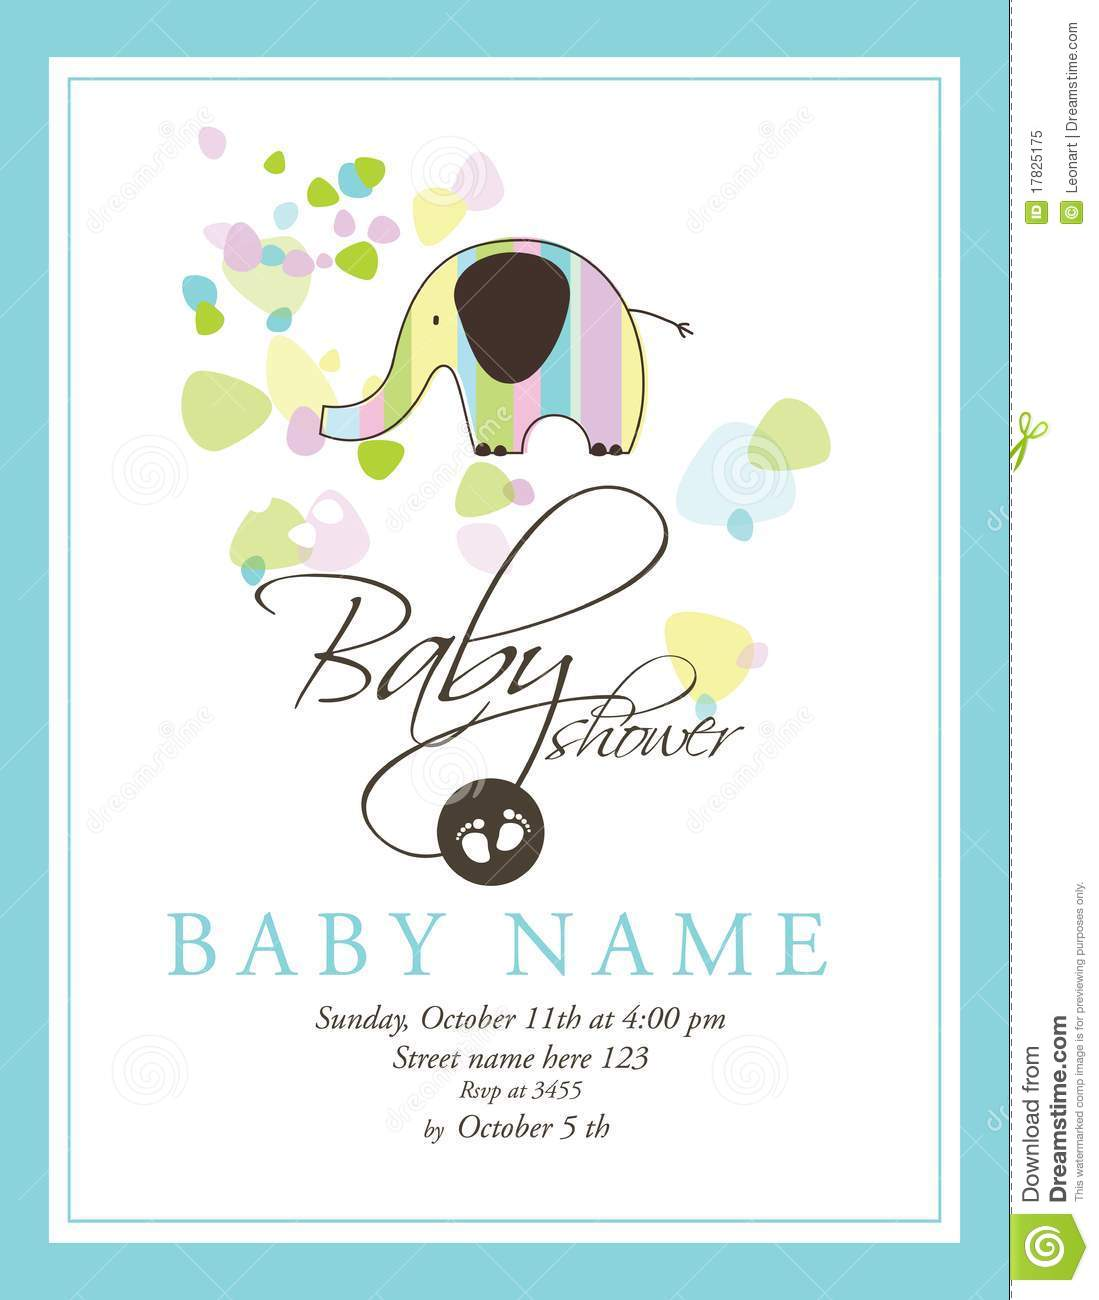 baby shower card royalty free stock photo image 17825175